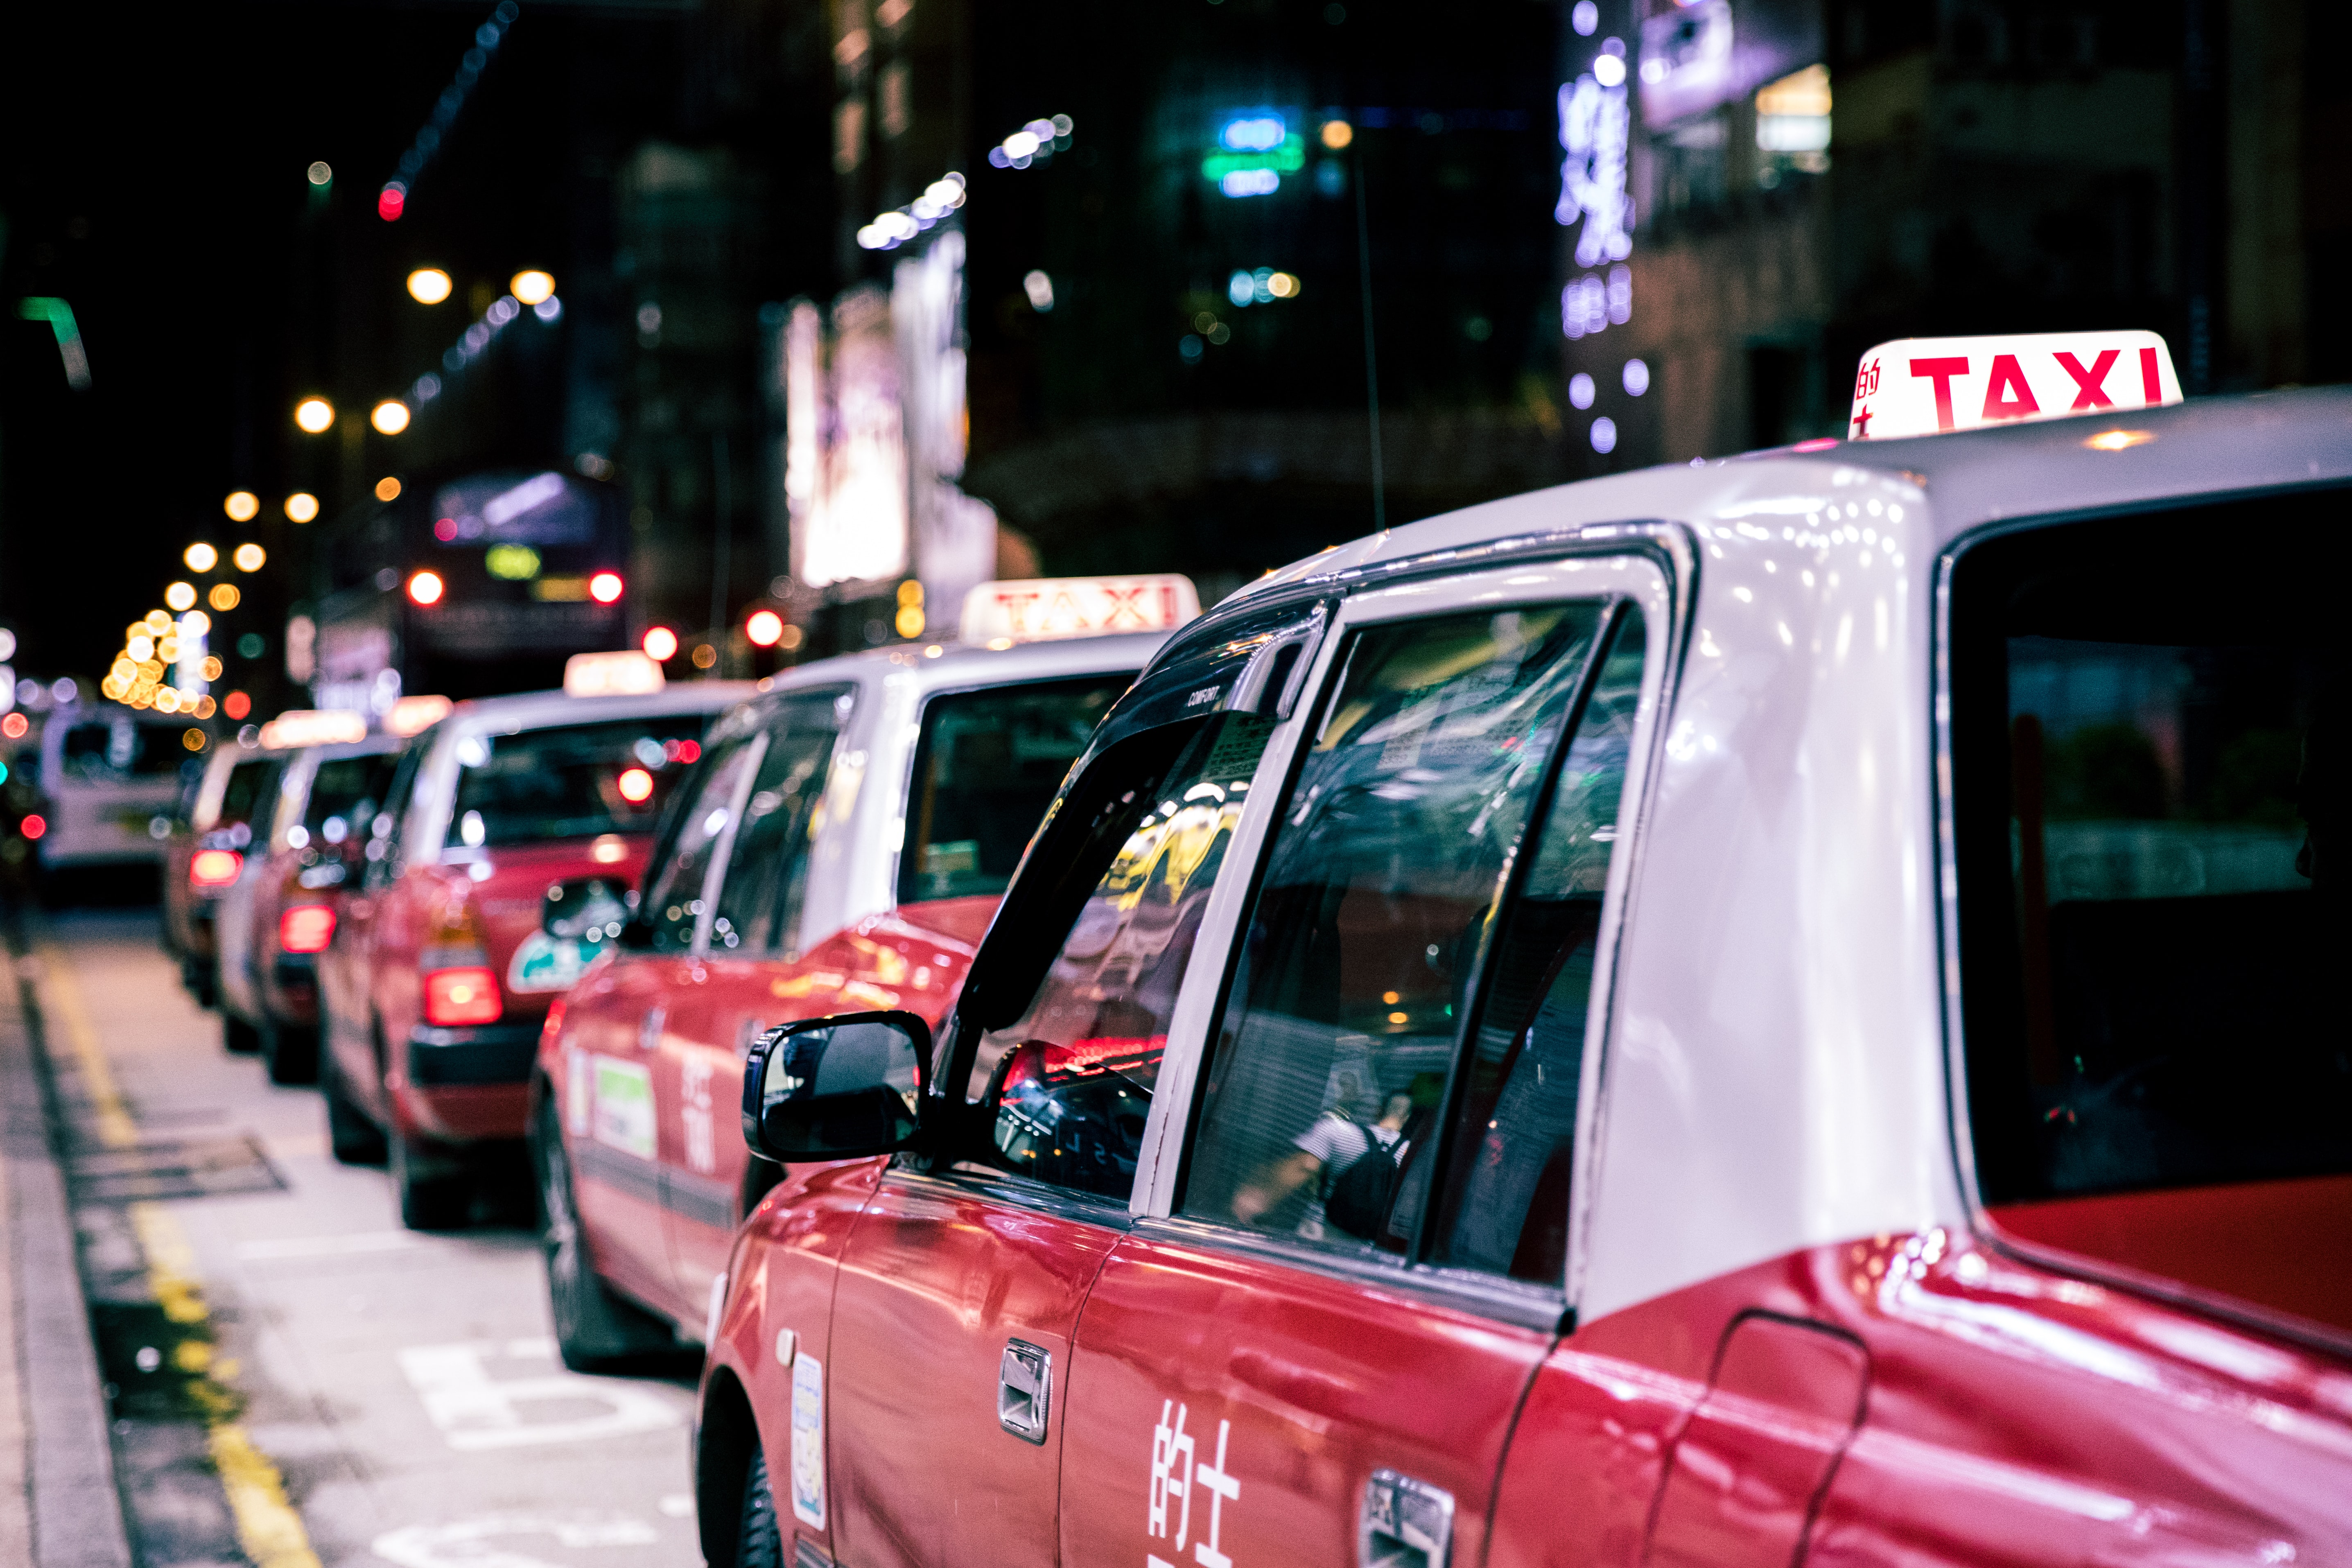 red taxis on road during nighttime